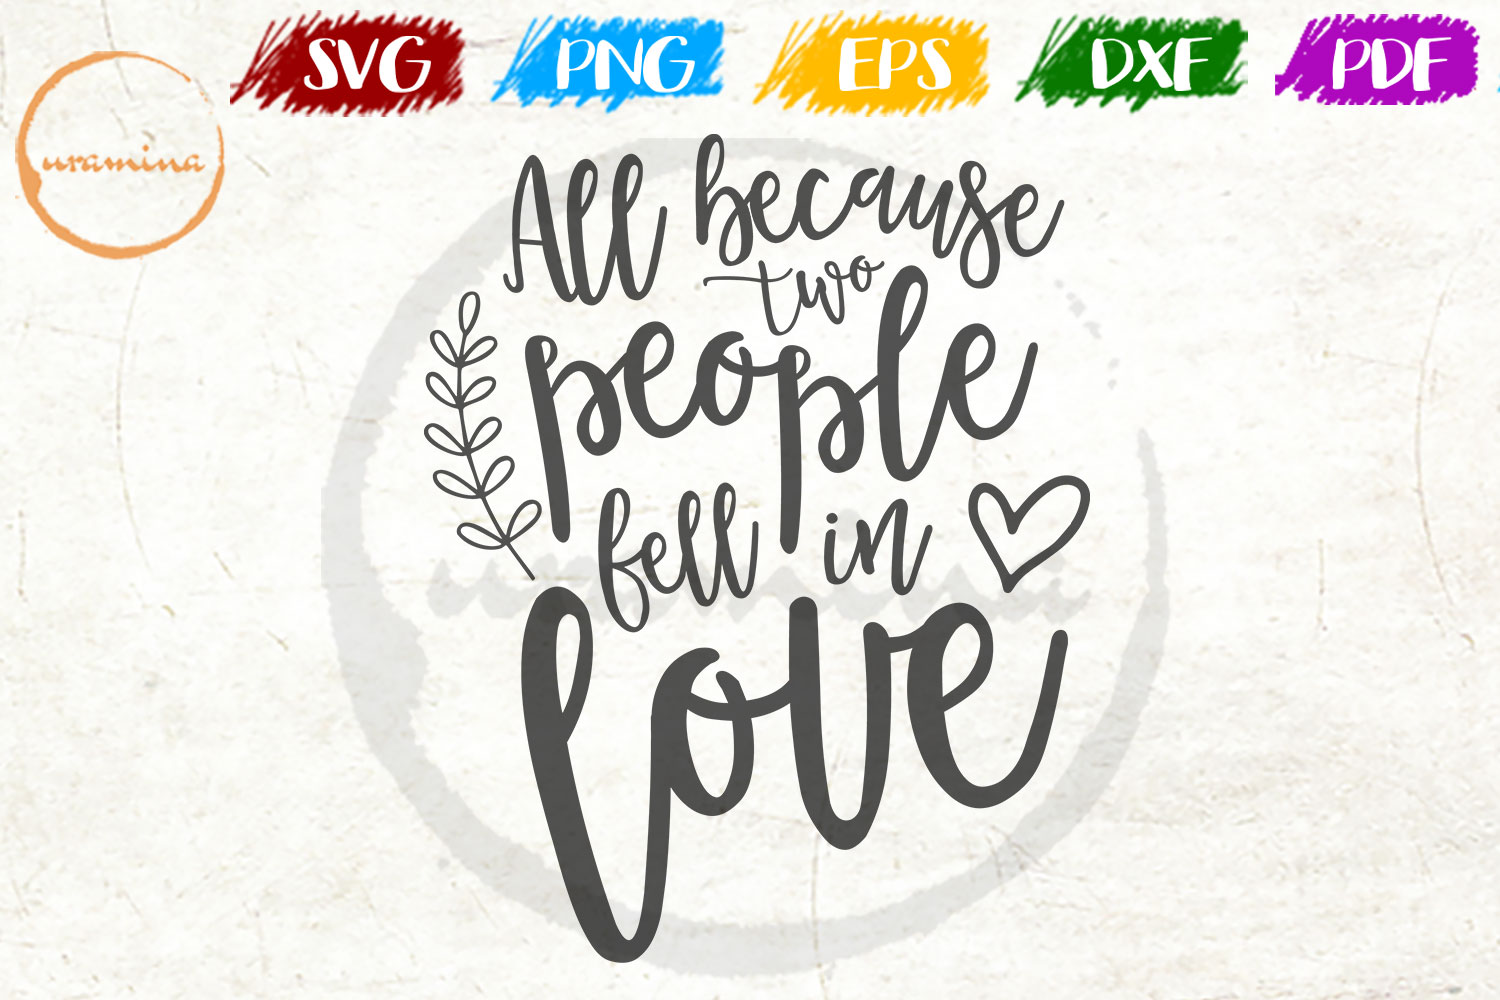 Download Free All Because Two People Fell In Love Graphic By Uramina for Cricut Explore, Silhouette and other cutting machines.